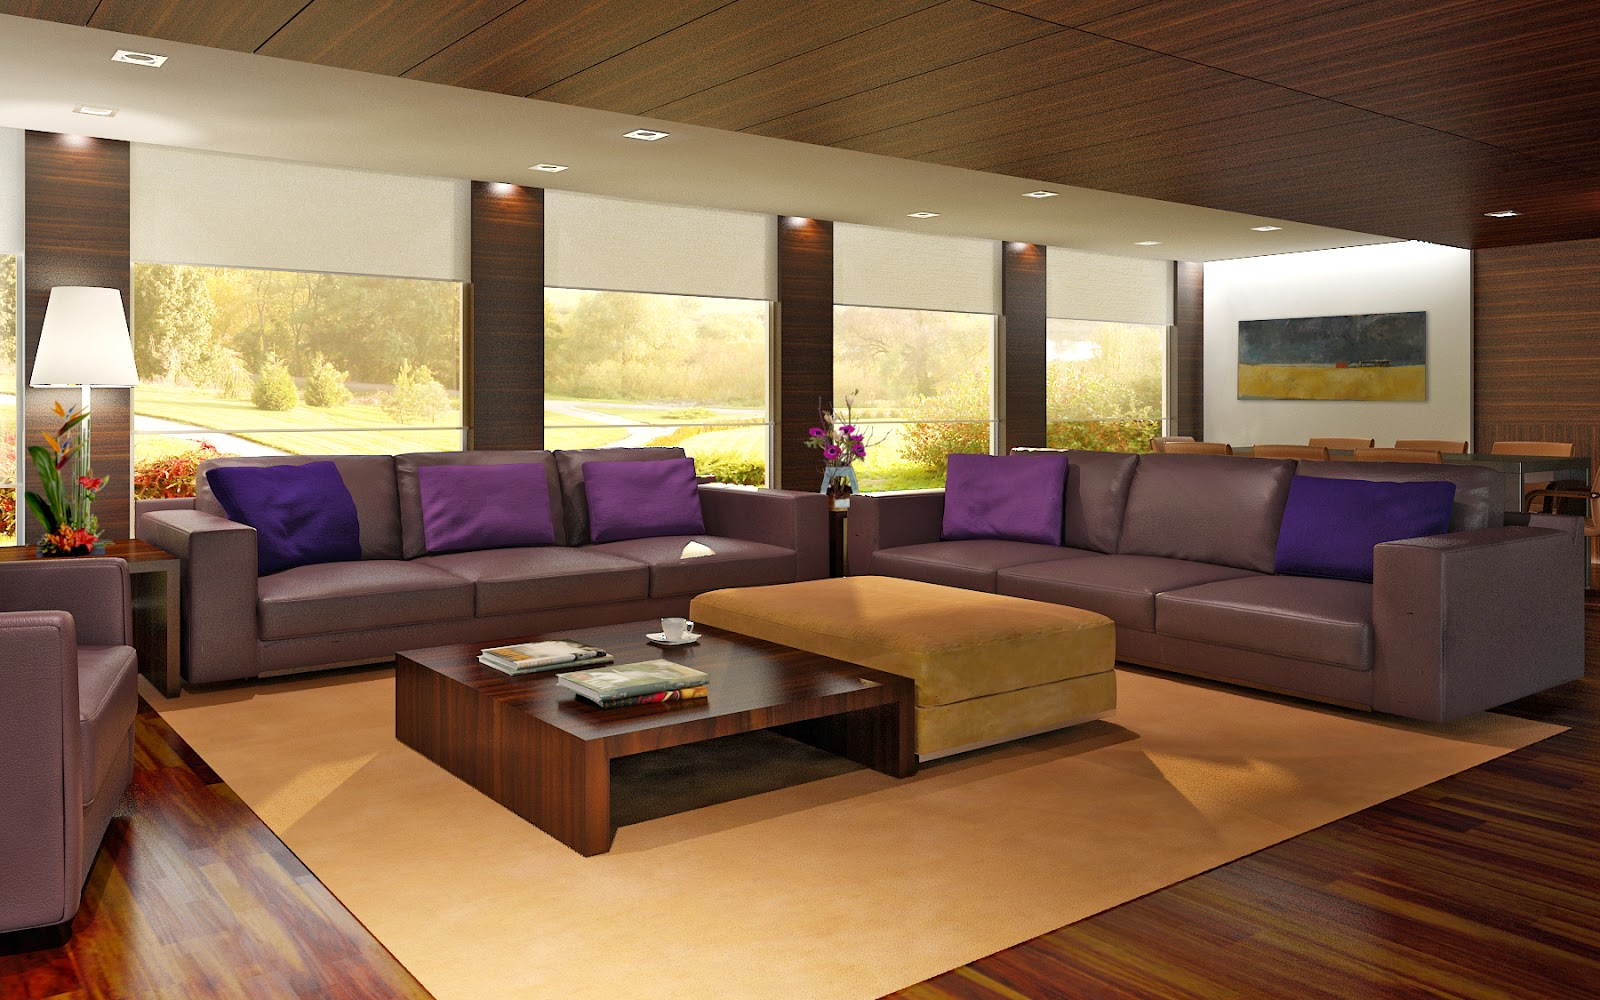 Sitting Room Furniture Prices In Nigeria Ideasidea